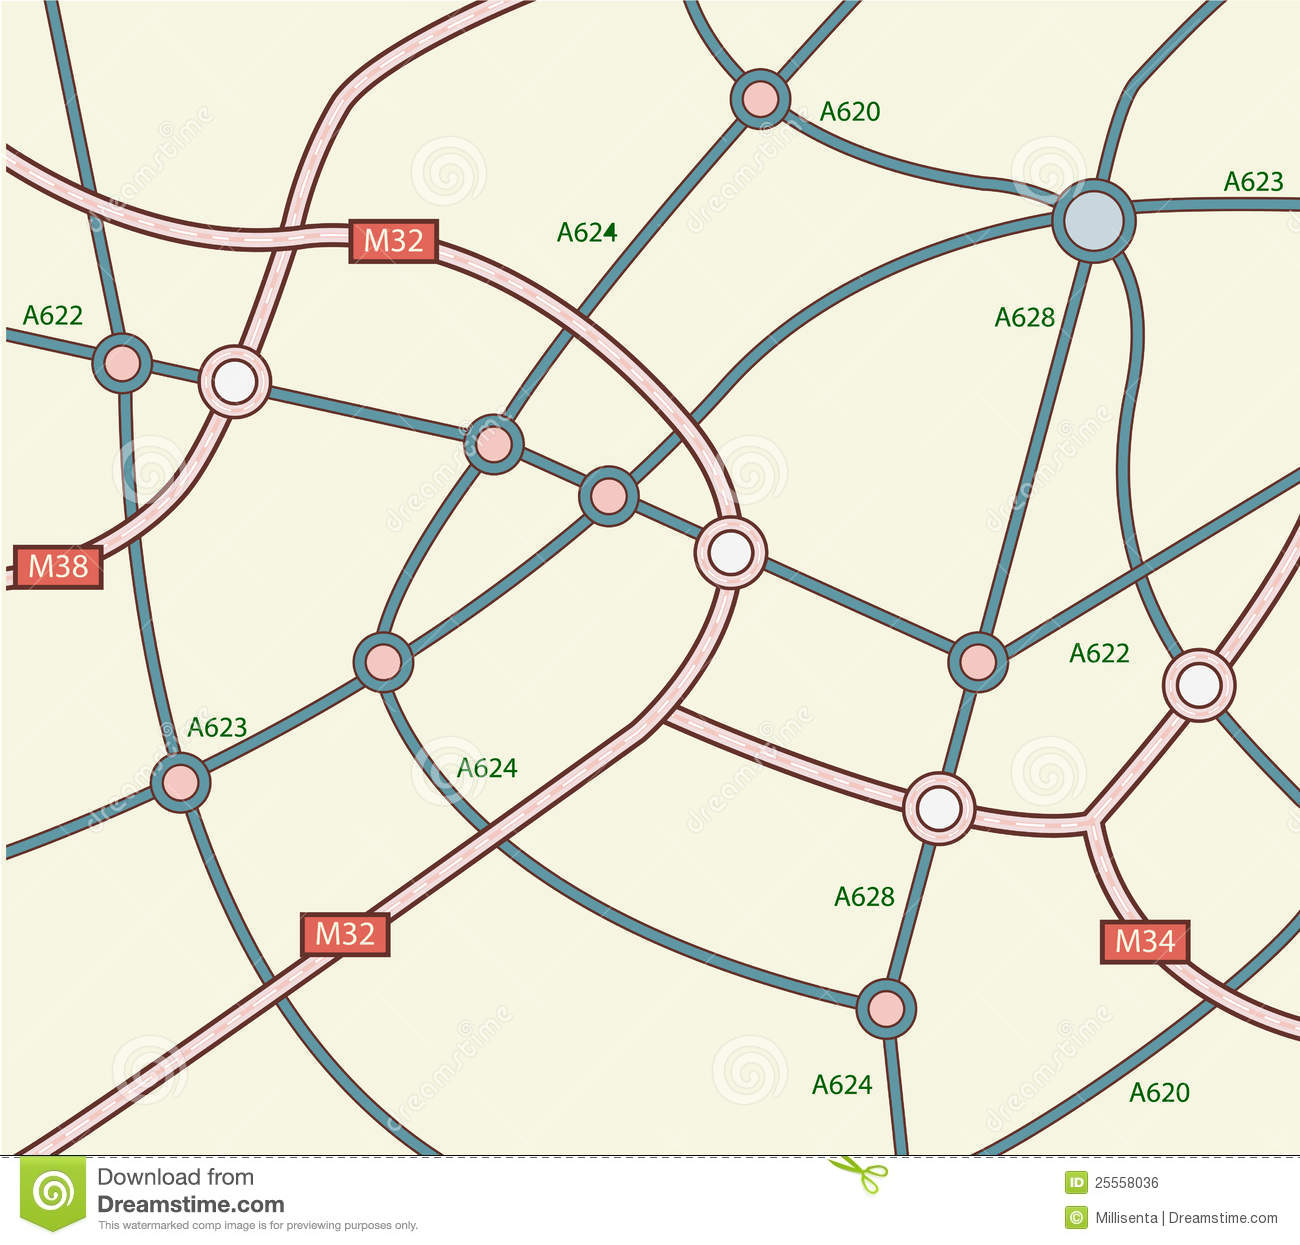 Road network clipart.